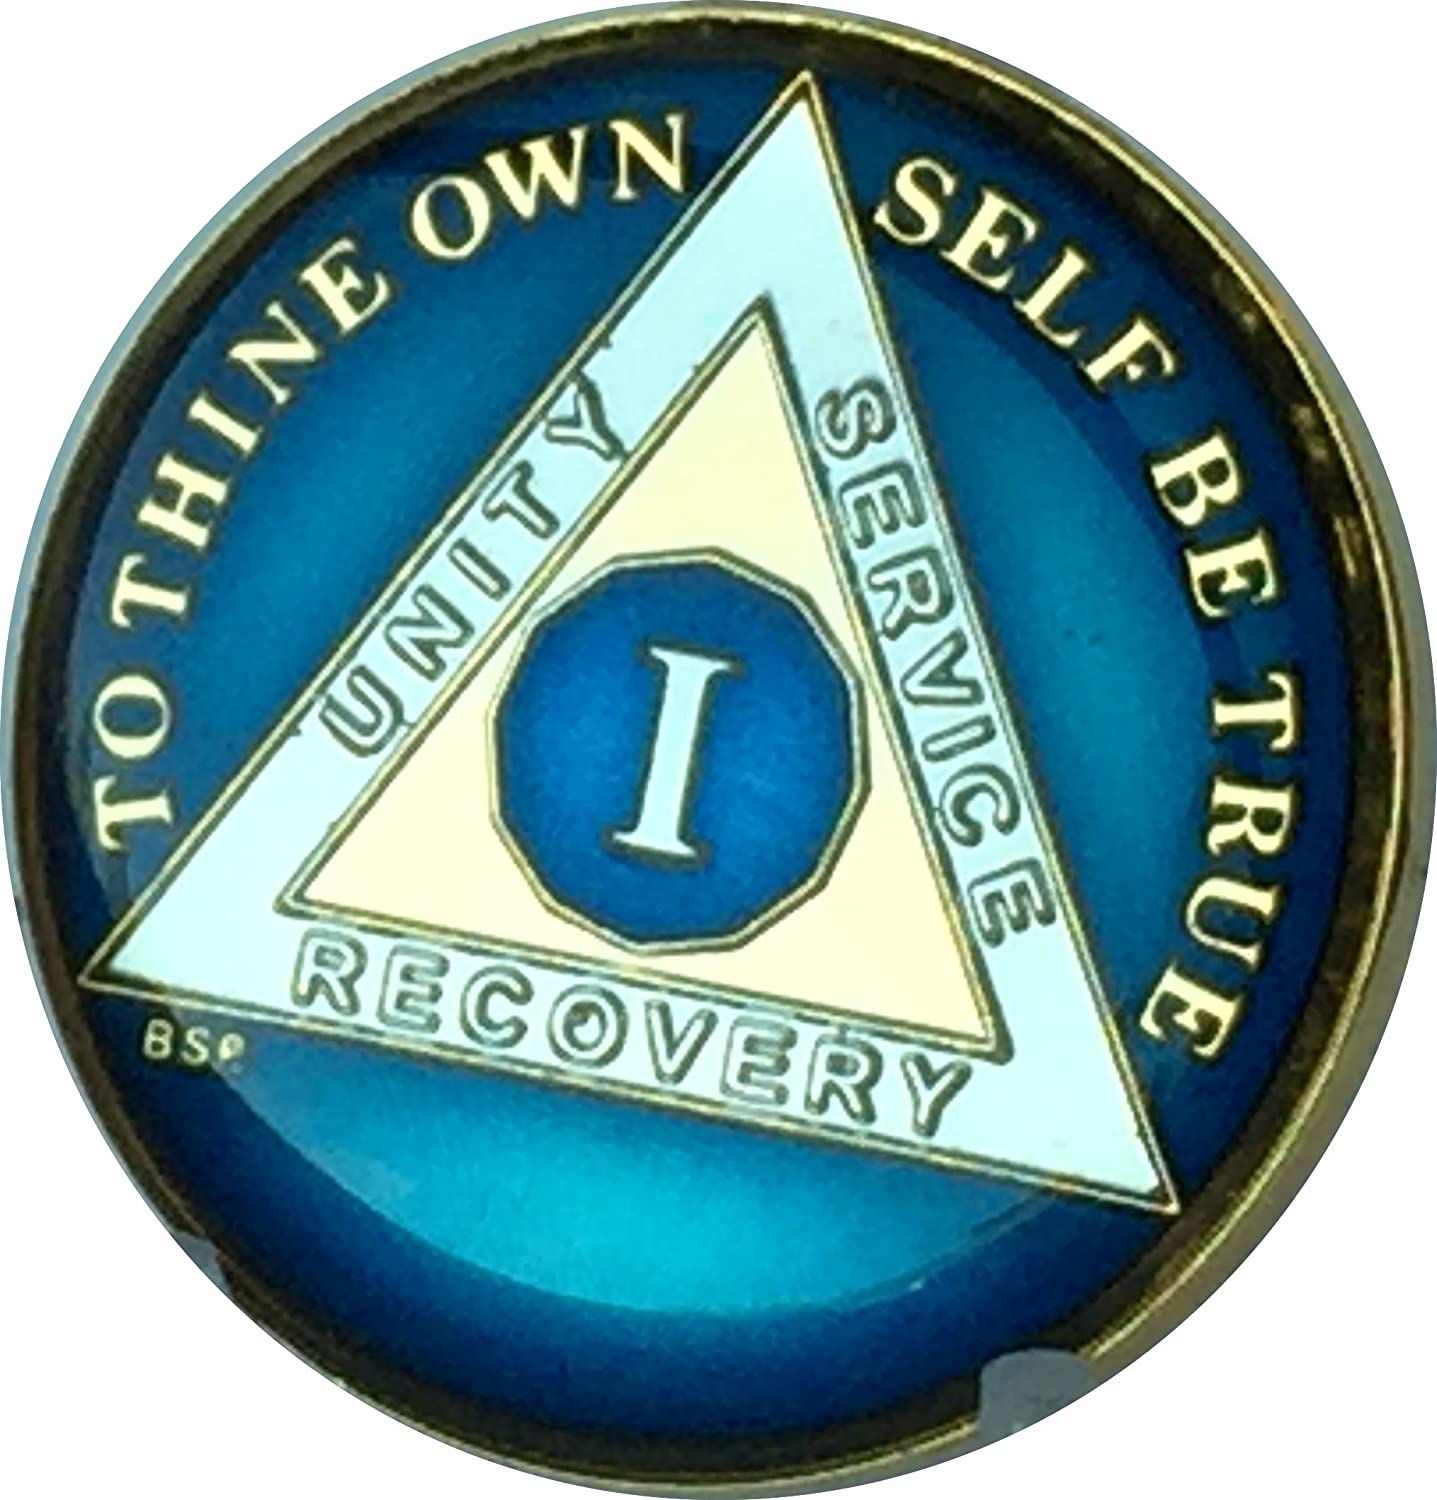 11 Year AA Medallion Dusty Blue Color Gold Plated Chip XI